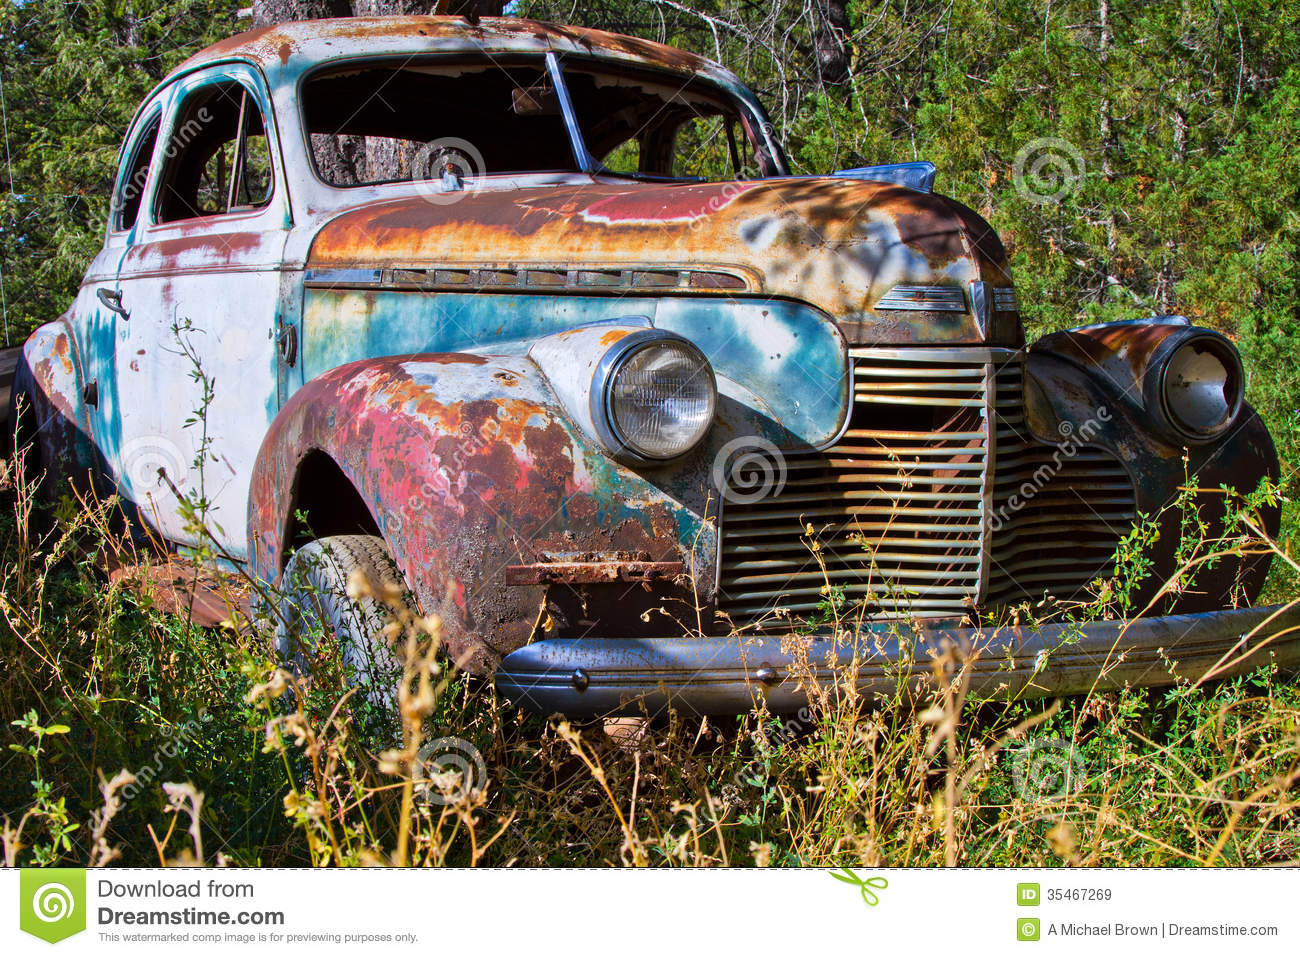 Images for photos of old cars in fields 6882cheap.cf